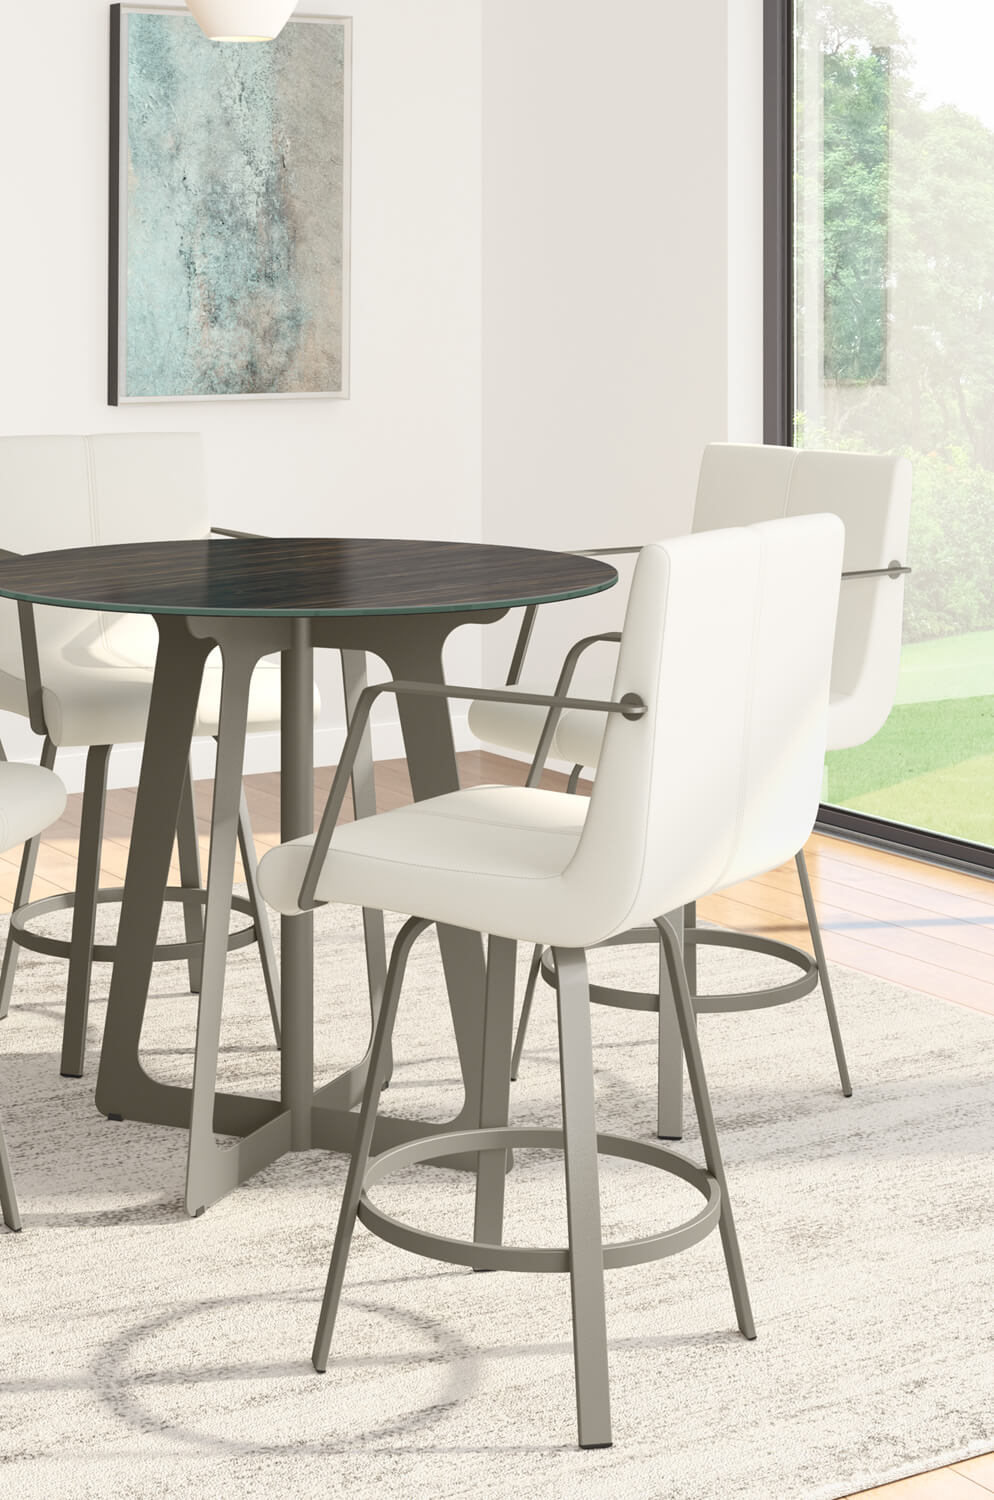 Buy Amisco S Edward Upholstered Swivel Stool With Arms